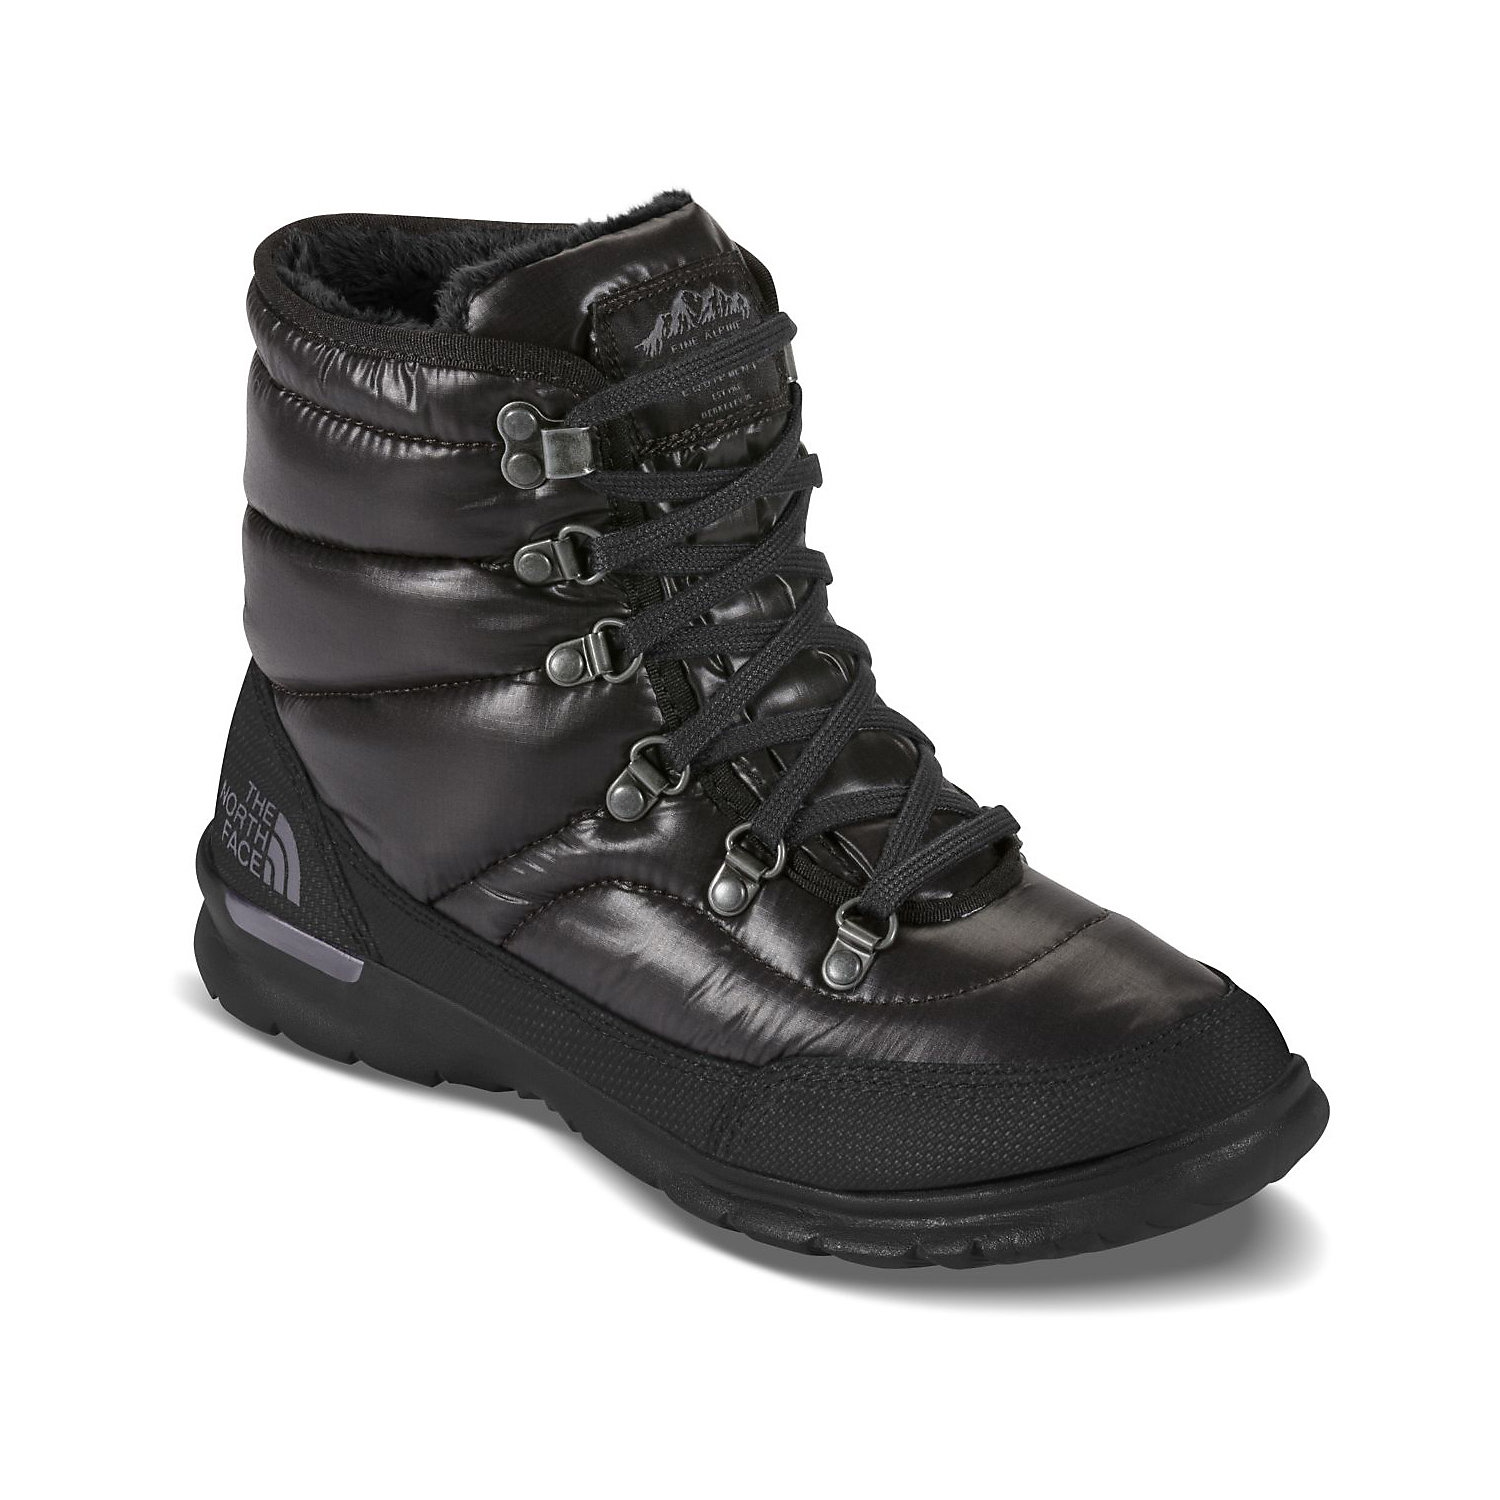 6b104d0b The North Face Womens ThermoBall Lace II Boot - Moosejaw